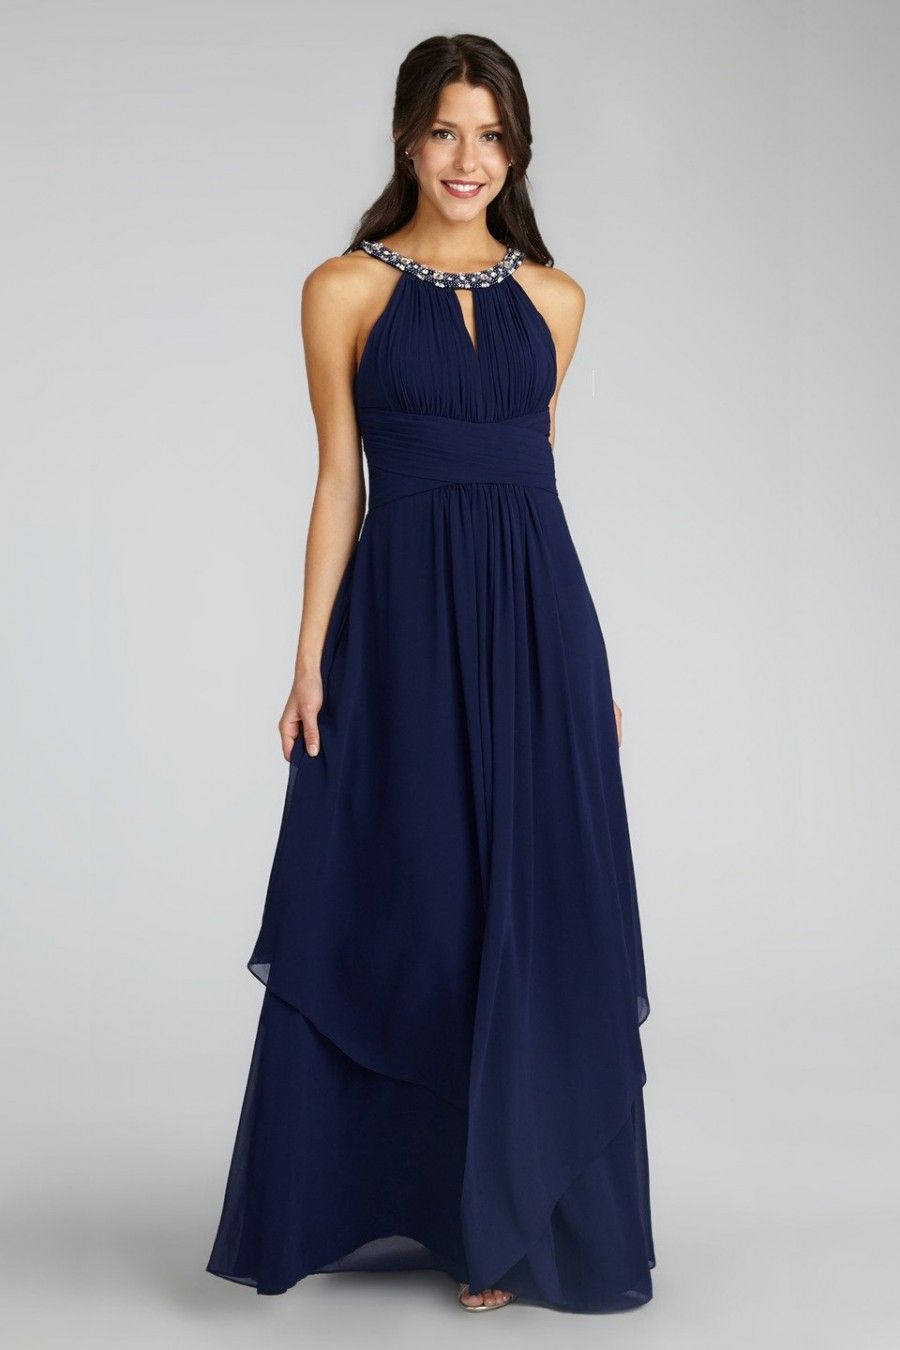 Long bridesmaid dresshigh low bridesmaid dresses navy blue cheap dress cocktail dress buy quality dresses rose directly from china dress coats for men suppliers beaded neckline brides maid dresses navy blue long ombrellifo Image collections